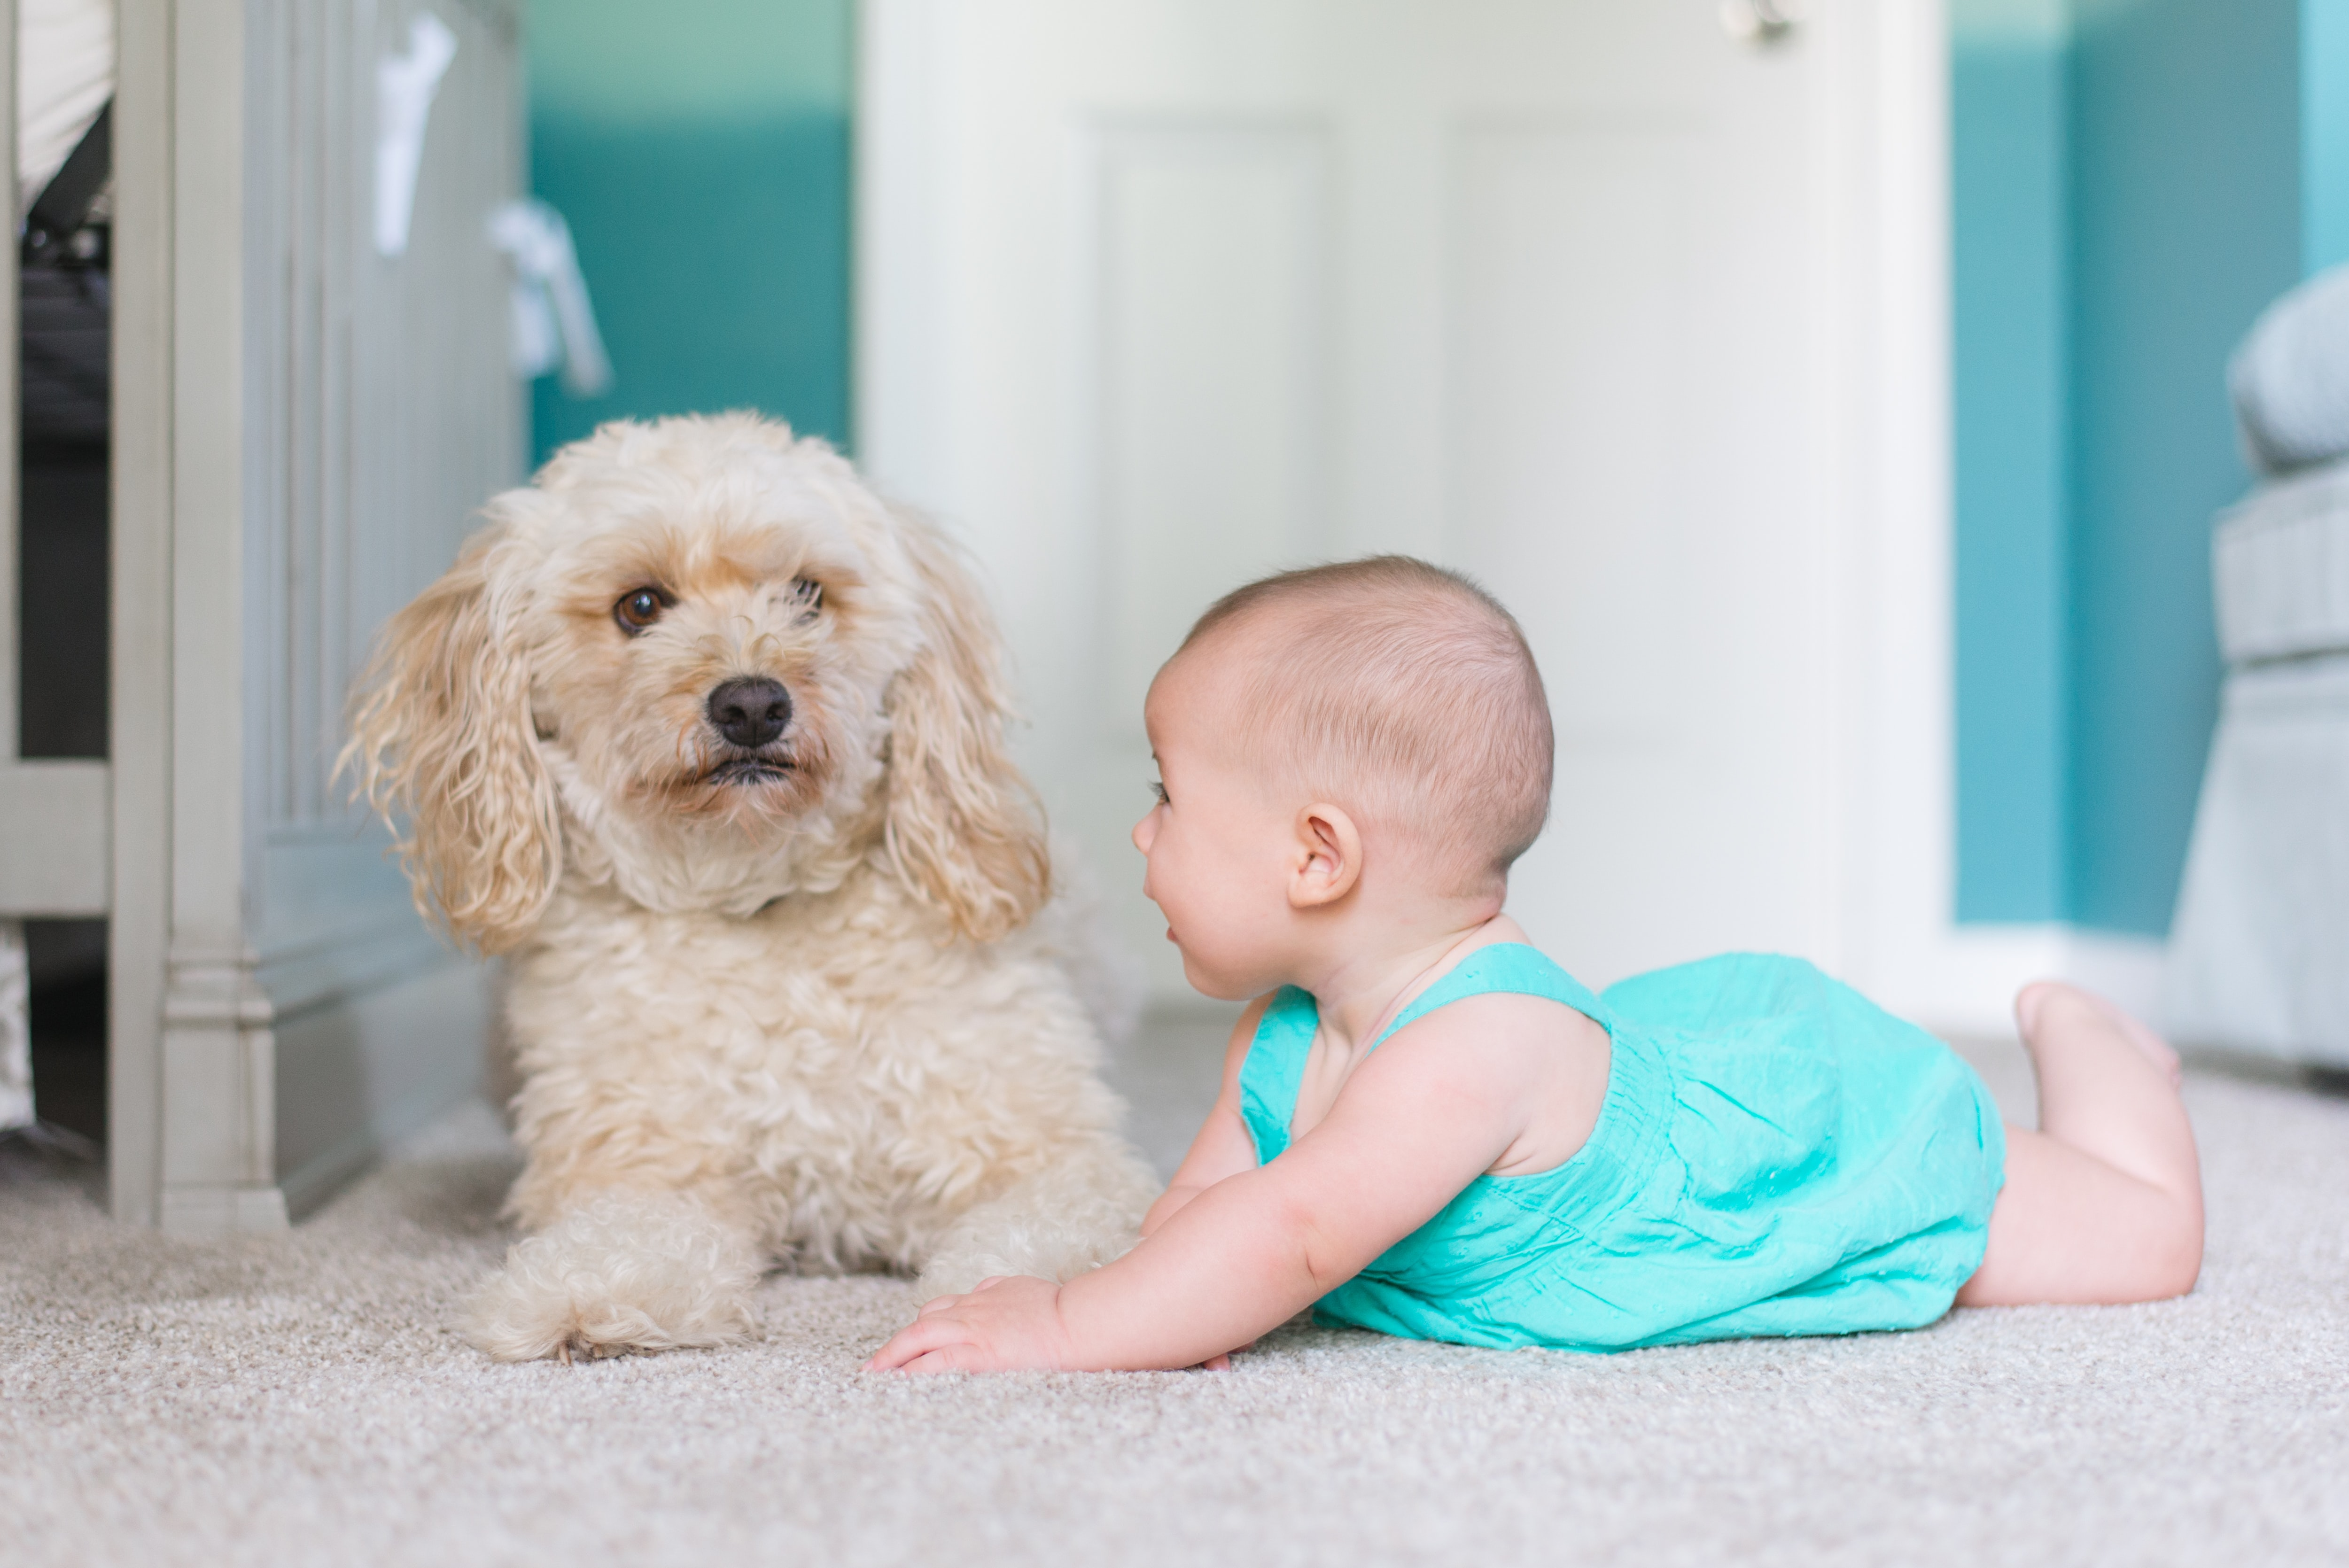 Baby playing with puppy